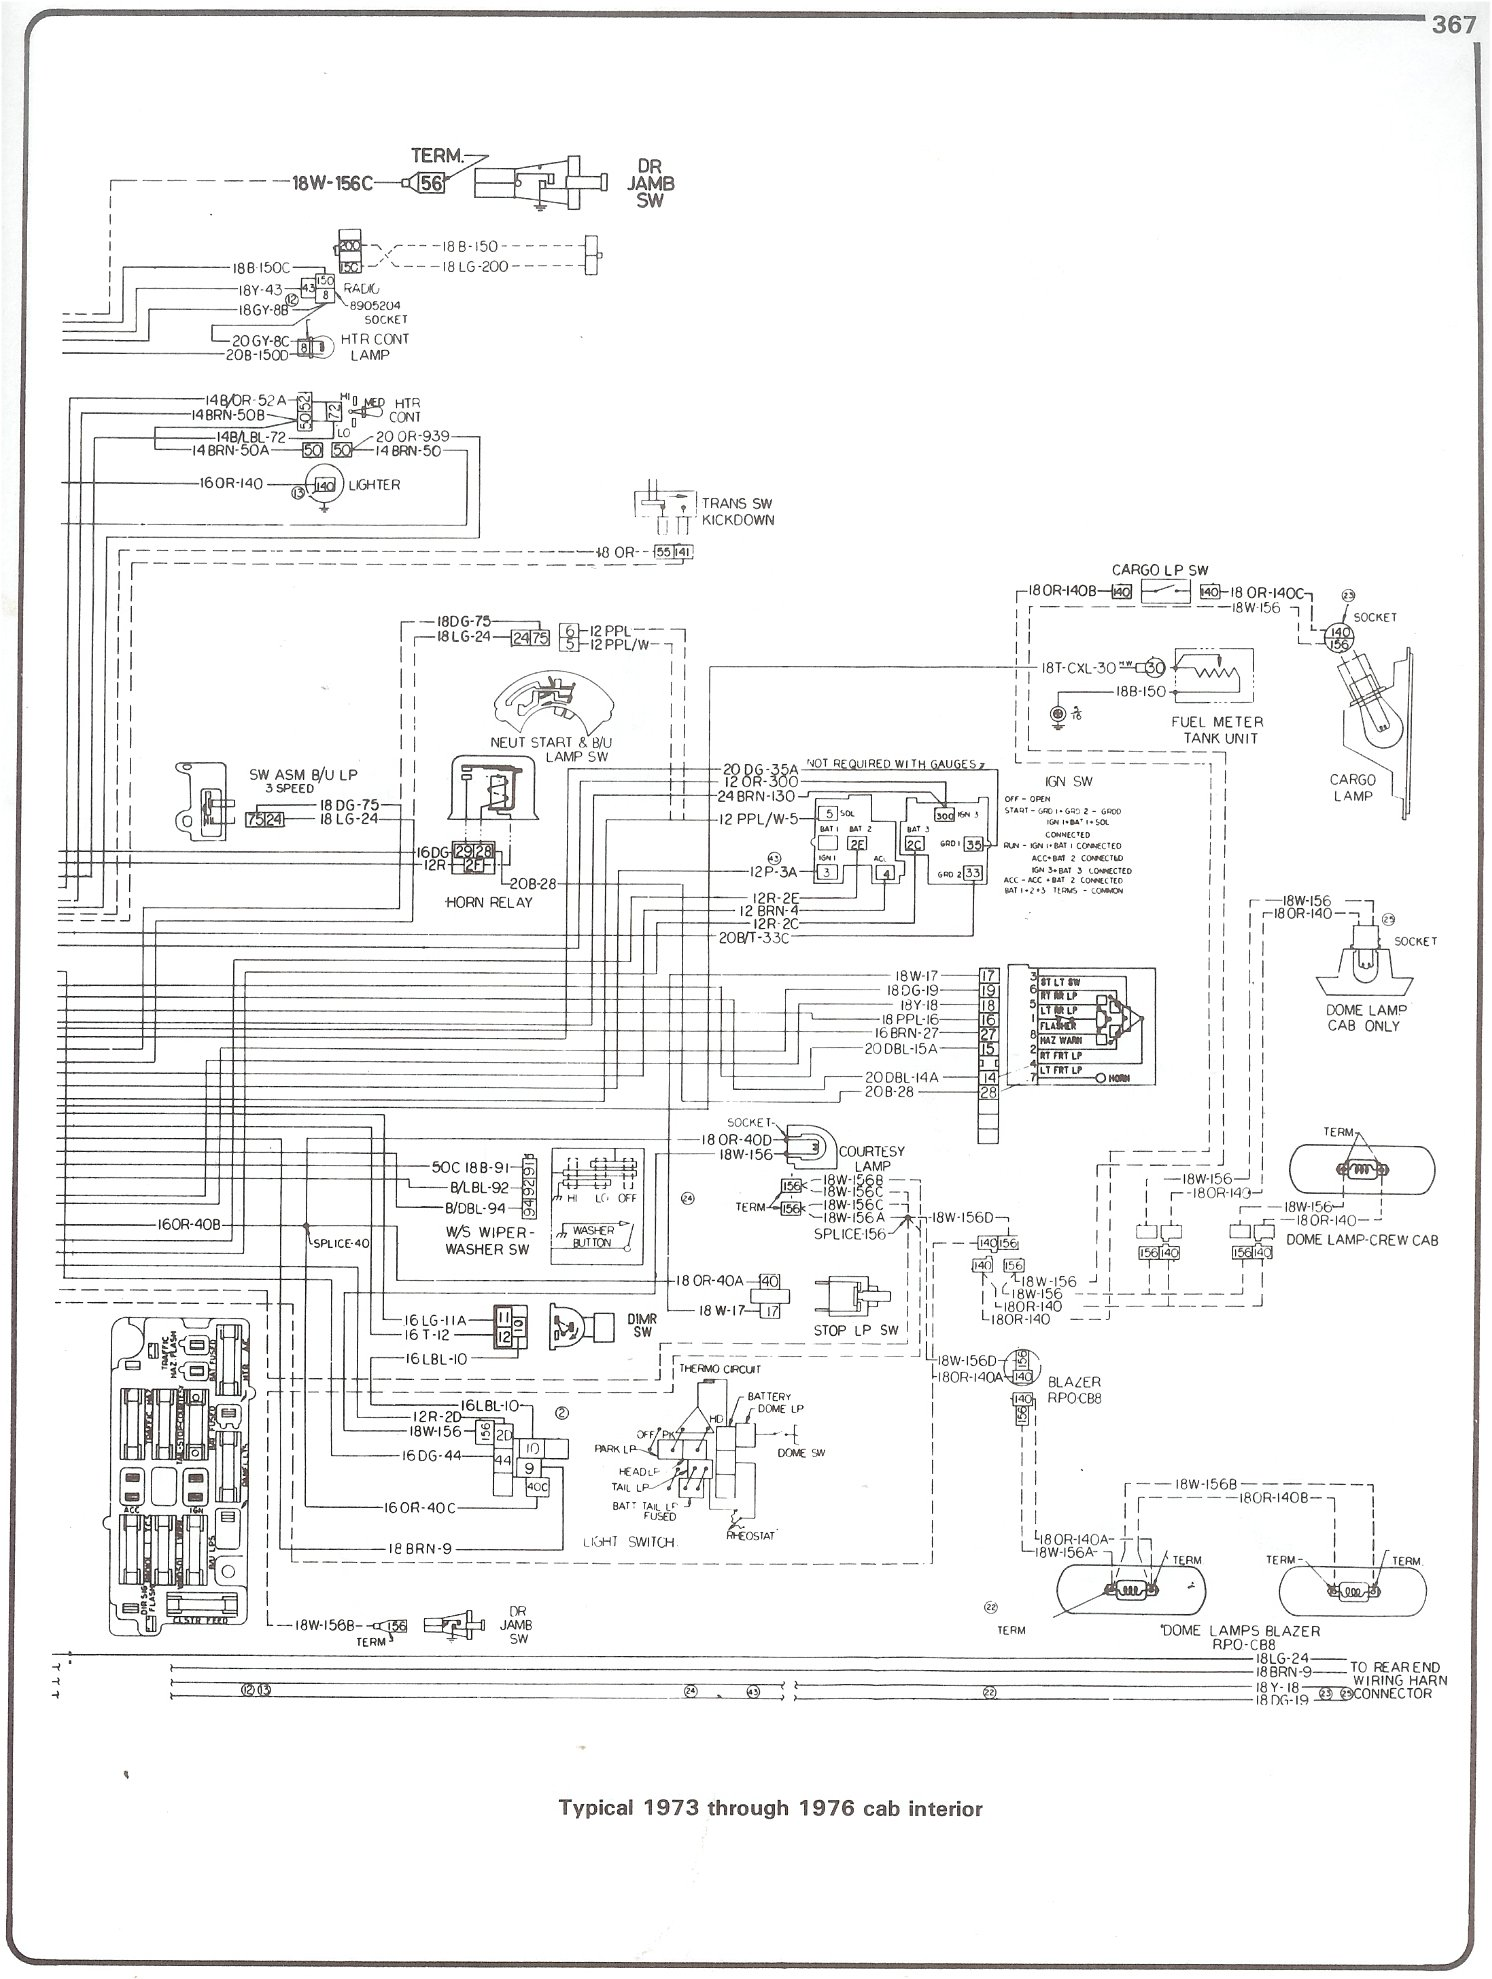 Complete 73-87 Wiring Diagrams on 91 silverado heater diagram, 99 silverado wiring diagram, 03 silverado wiring diagram, 2000 chevy silverado wiring diagram, 08 silverado wiring diagram, 90 silverado wiring diagram, 2001 silverado wiring diagram, 2008 chevy silverado wiring diagram, 1999 chevy silverado wiring diagram, 05 silverado wiring diagram, 2004 chevy silverado wiring diagram, 2005 silverado wiring diagram,